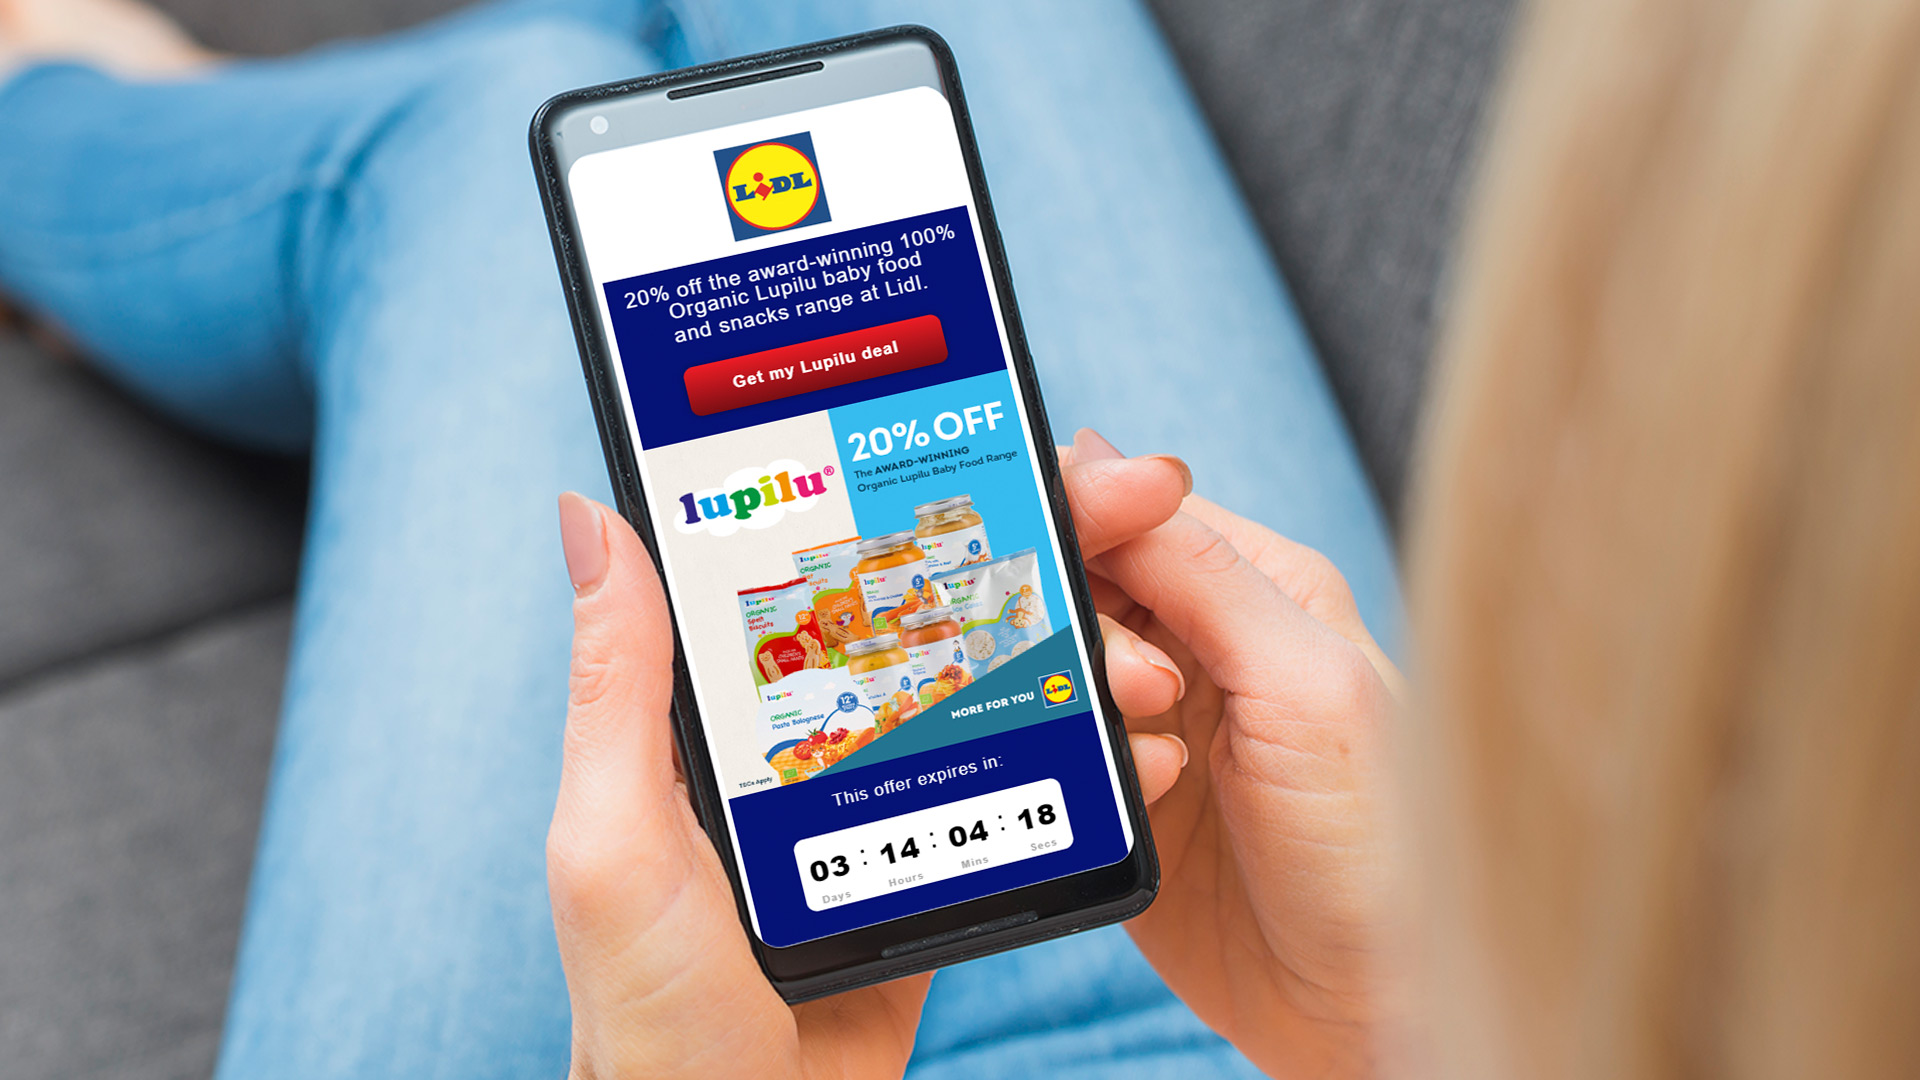 Lidl - Mother's Day  use case image